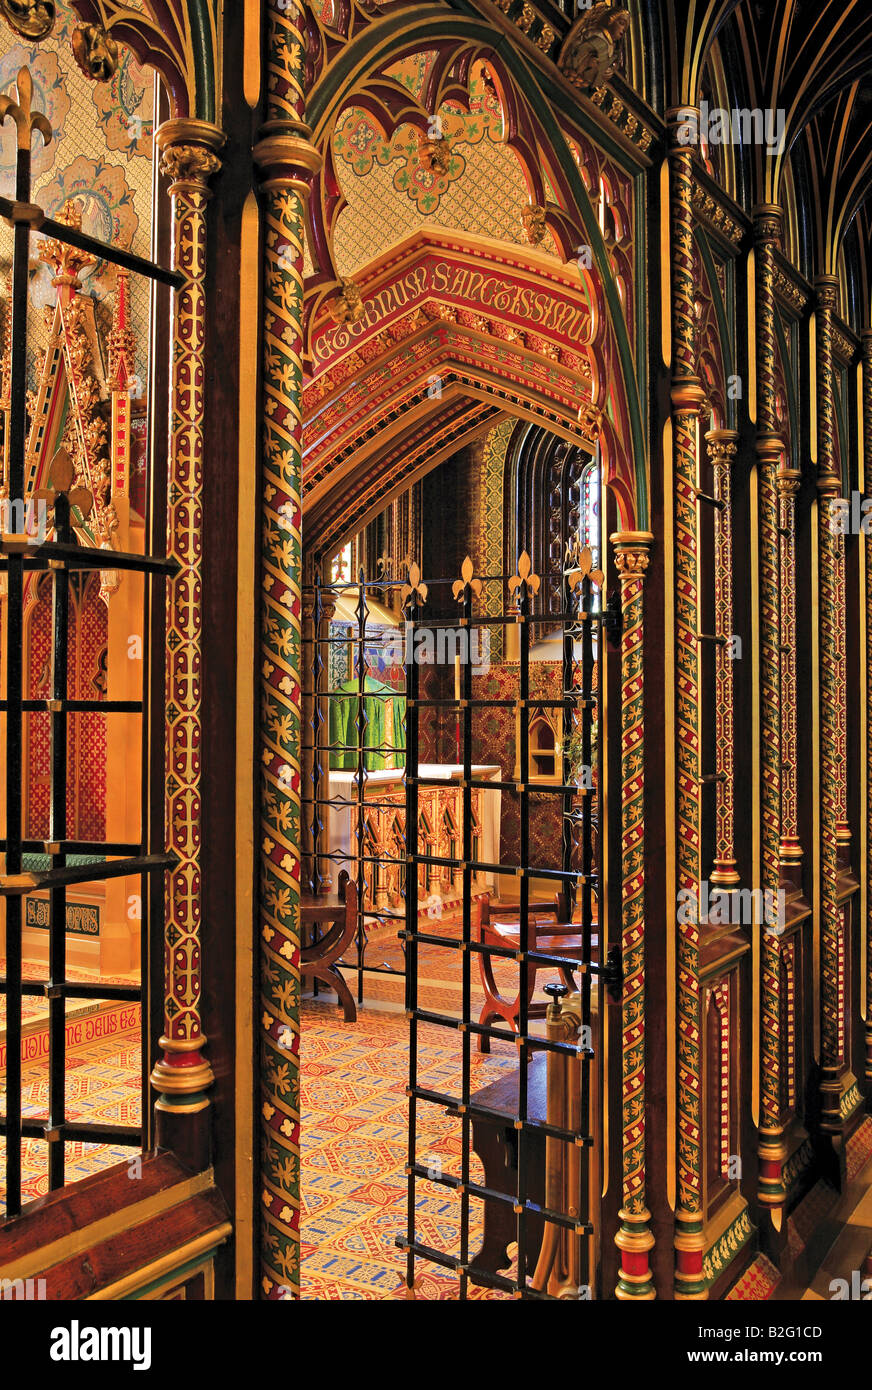 Rood screen. St Giles church, Cheadle, Staffordshire, designed in the Gothic Revival style by A.W.N. Pugin - Stock Image